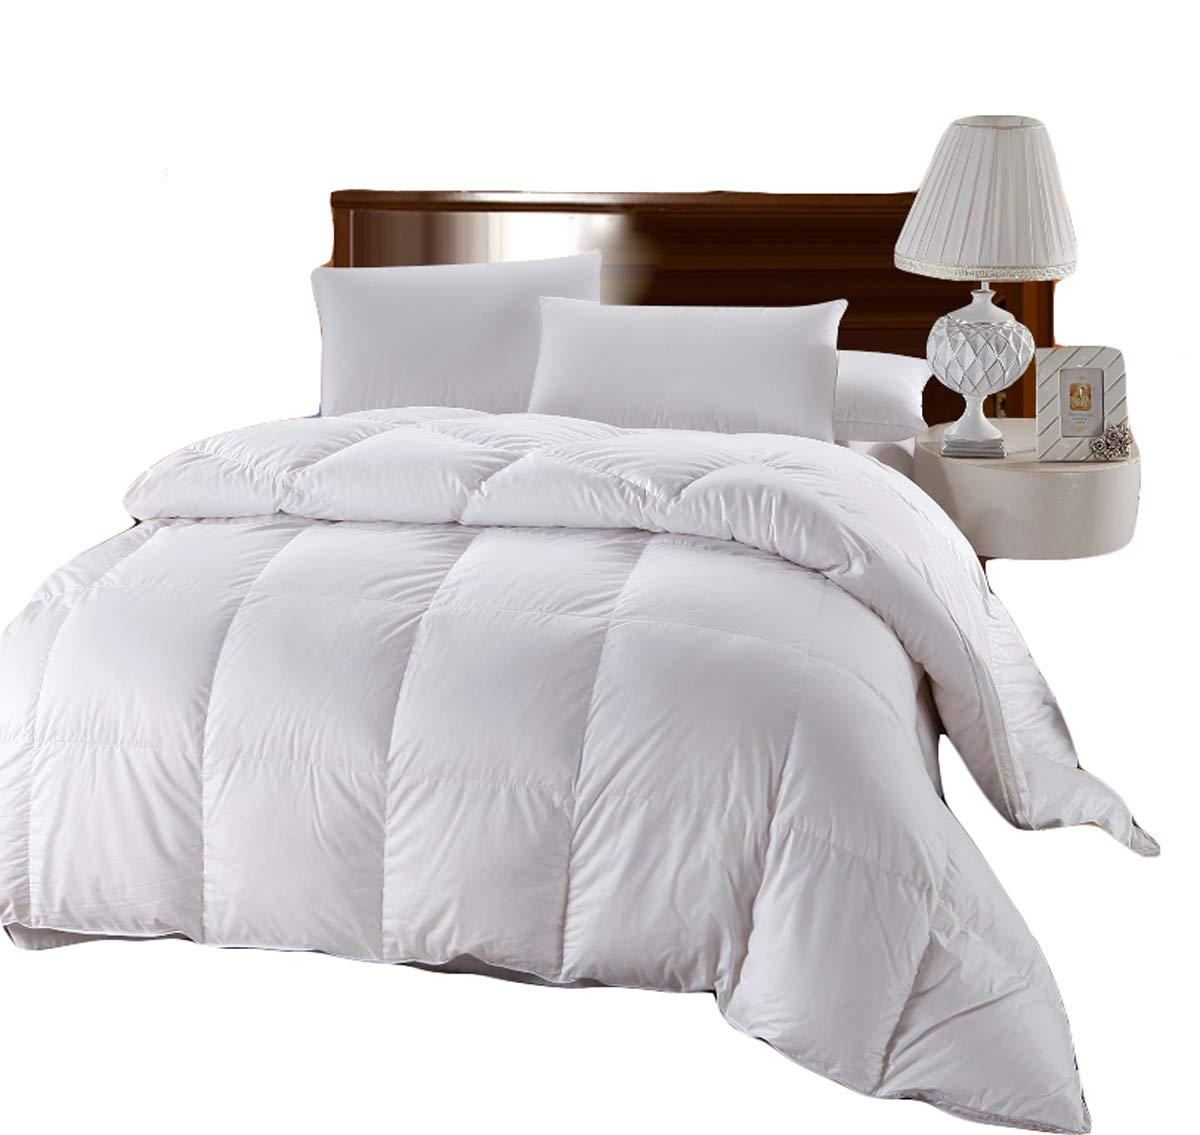 Royal Hotel Collection 500 Thread Count, 100-Percent Cotton Siberian Down Alternative Comforter, 750 Fill Power, 70 Oz Fill Weight, Full/Queen Size, 90-Inch by 90-Inch, Solid White